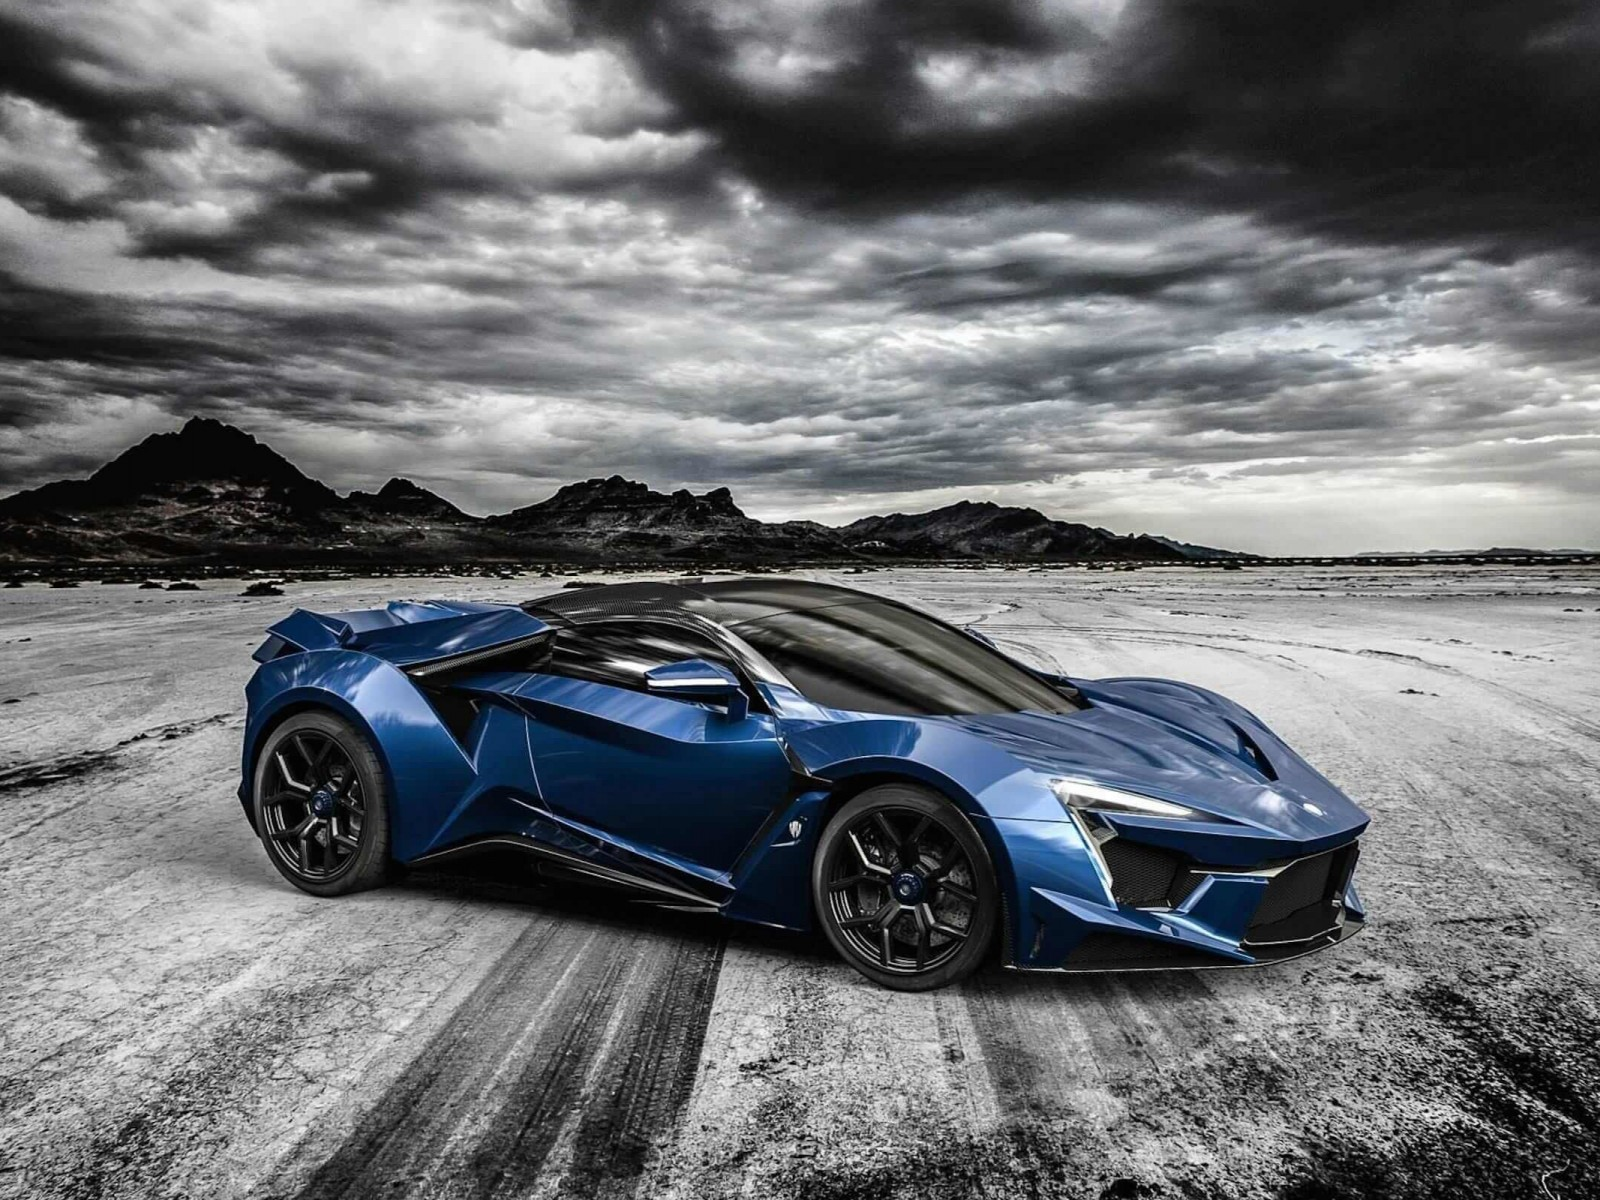 FENYR Supersport Wallpaper for Desktop 1600x1200